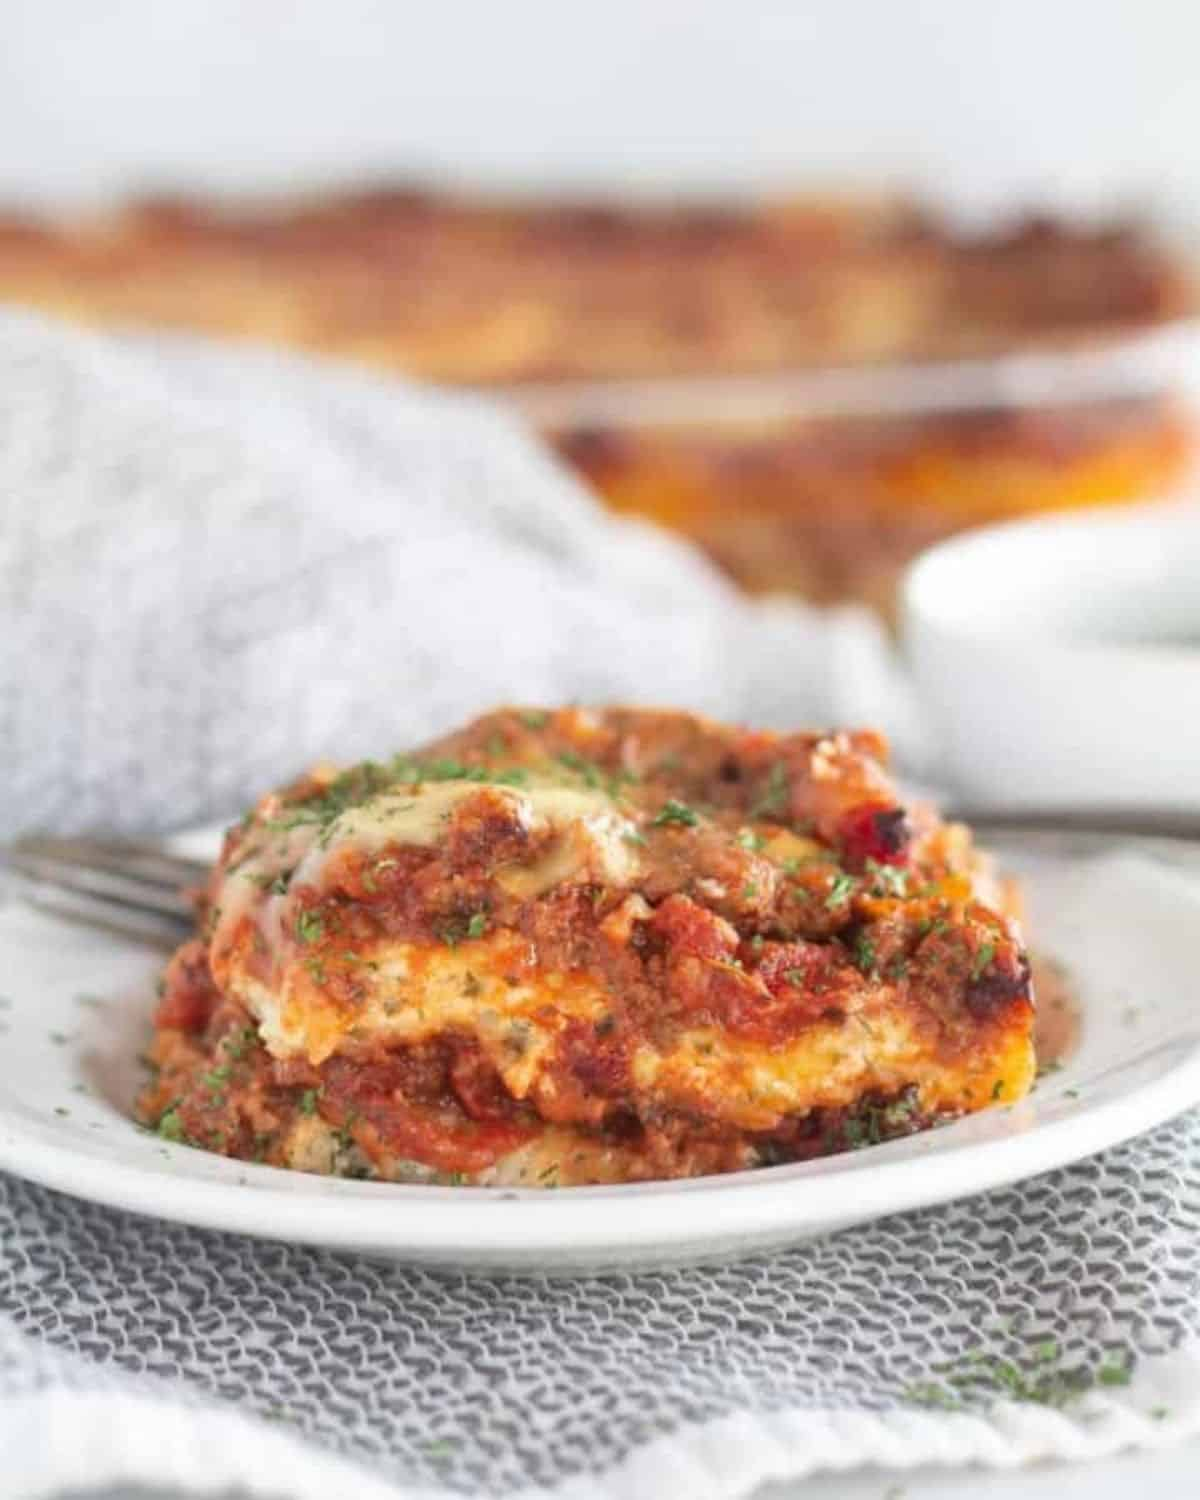 piece of lasagna on white plate